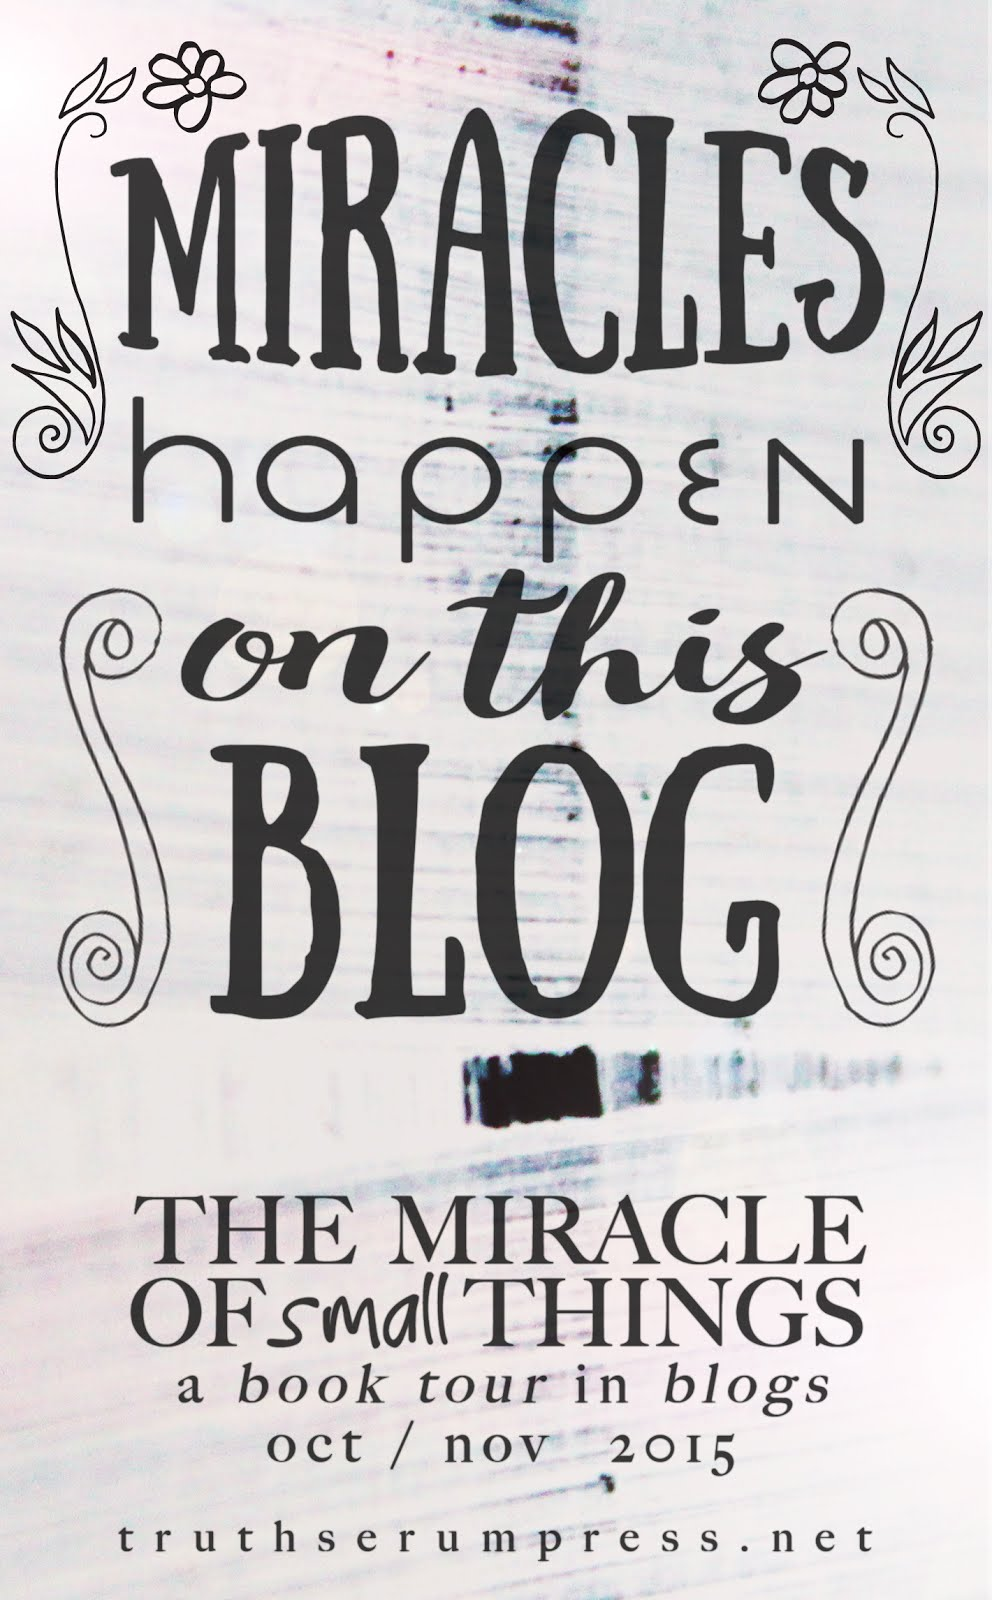 The Miracle of Small Things